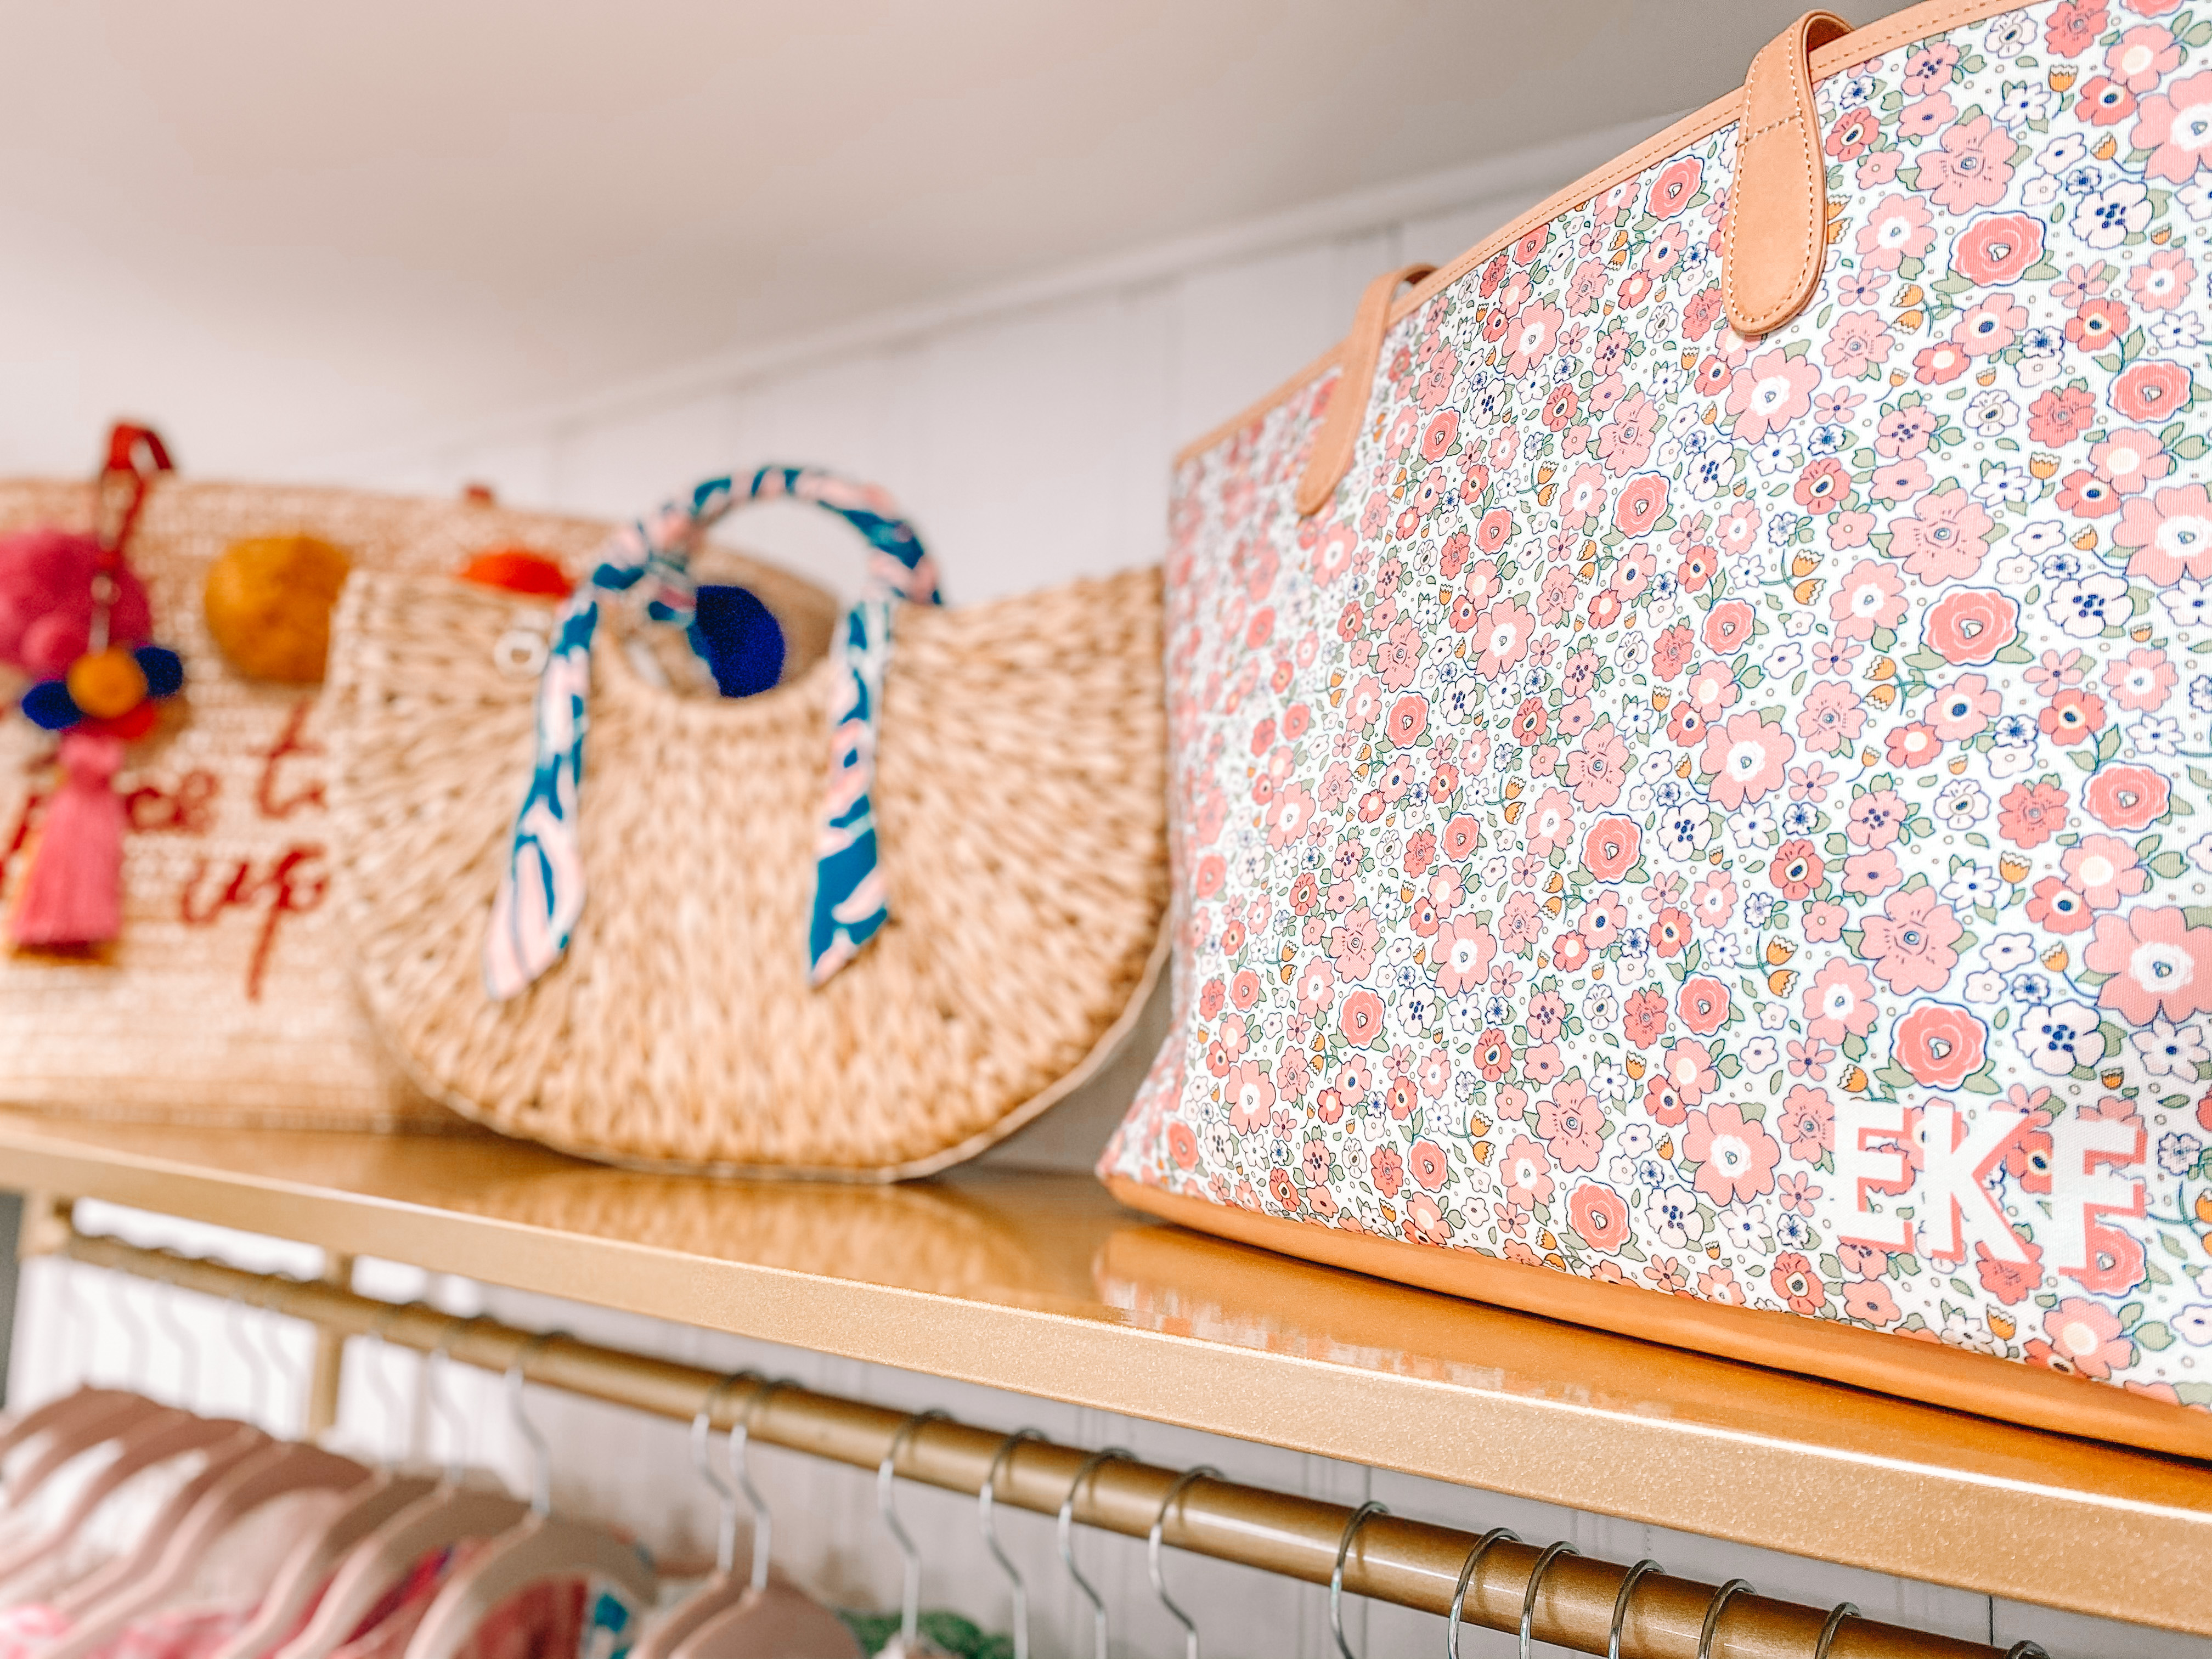 bags on a clothing rack in the home office